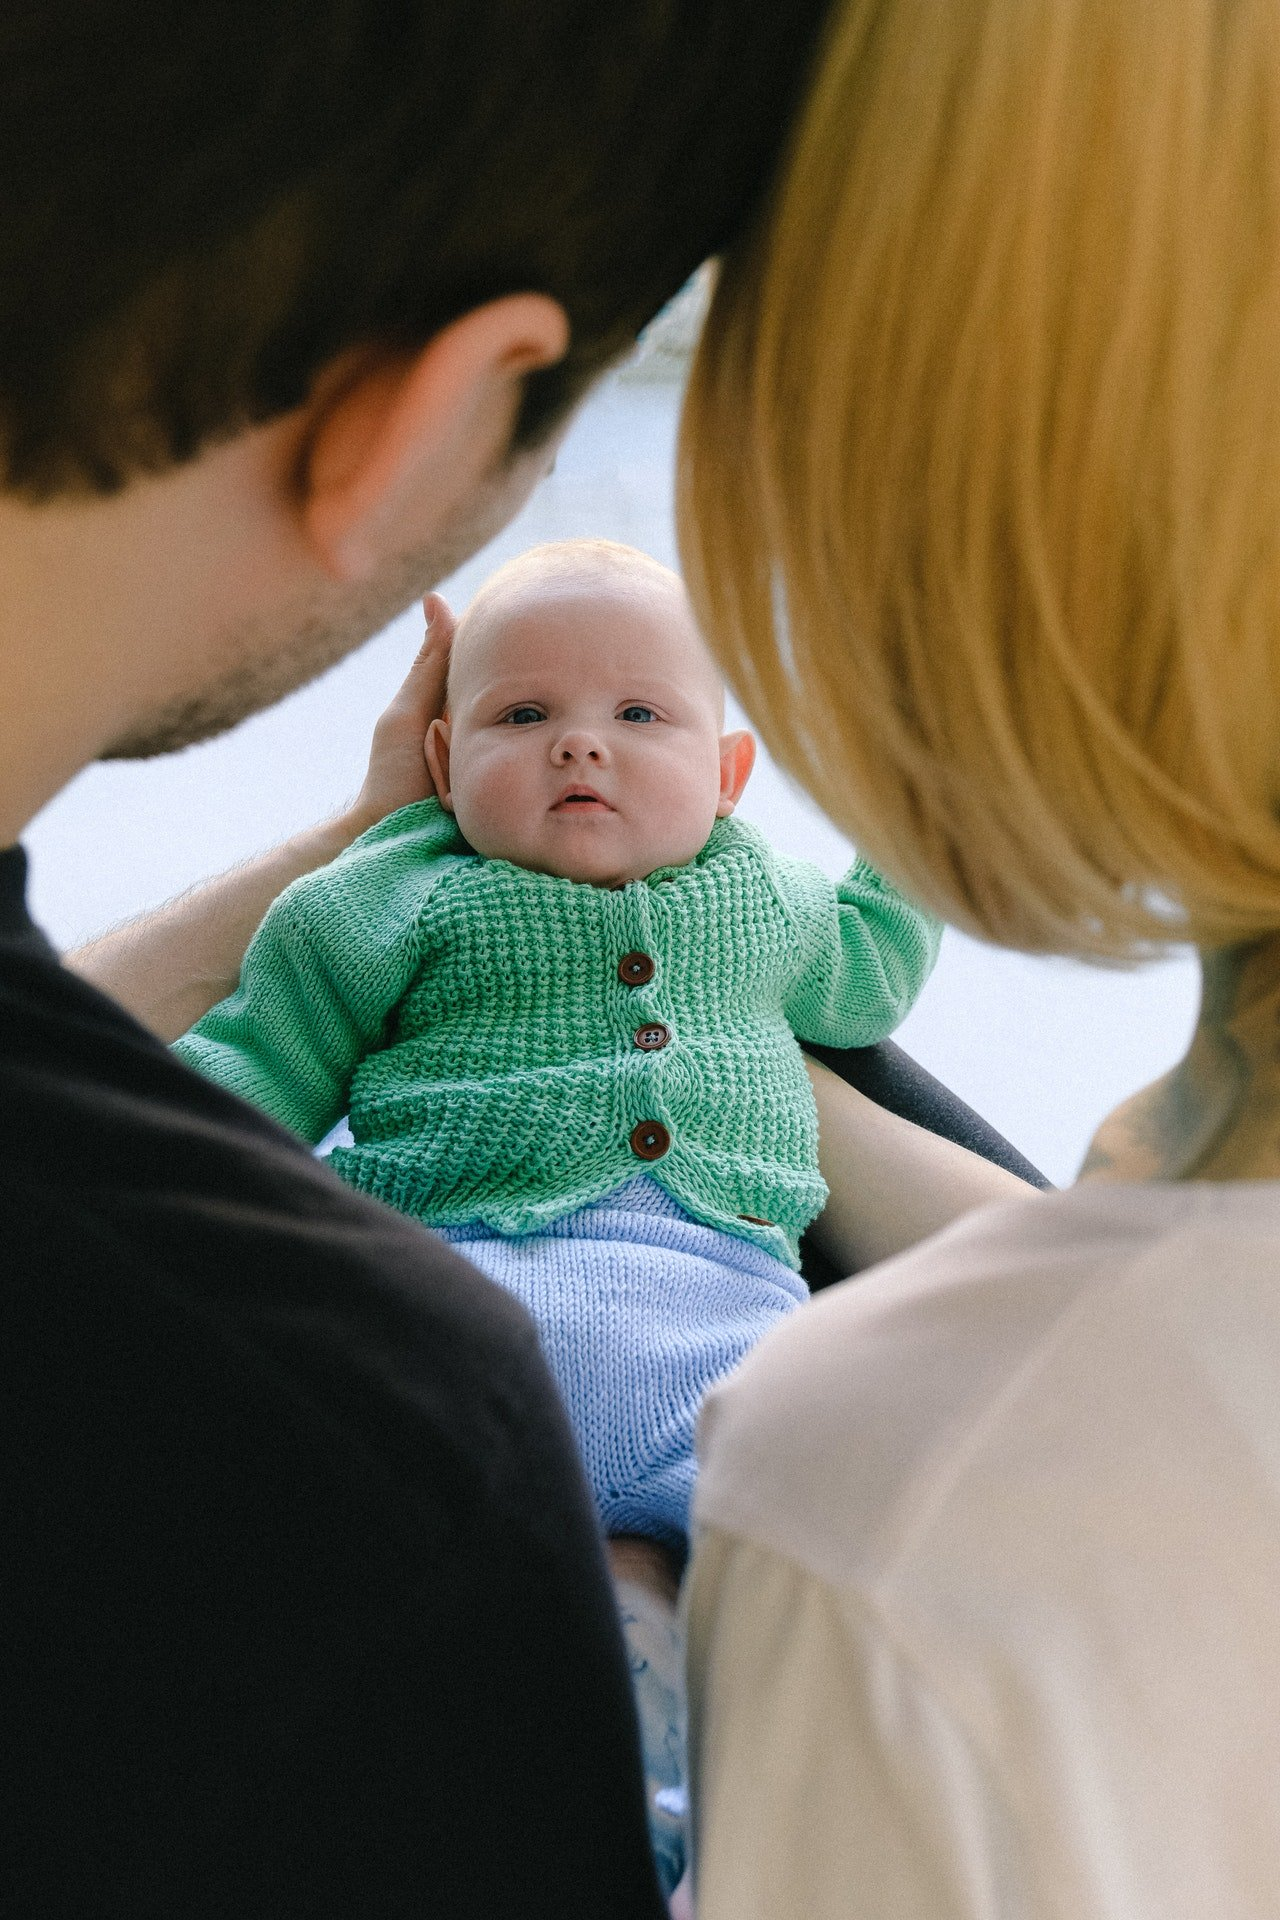 They had a boy, but Ella wouldn't call him by his real name. | Source: Pexels